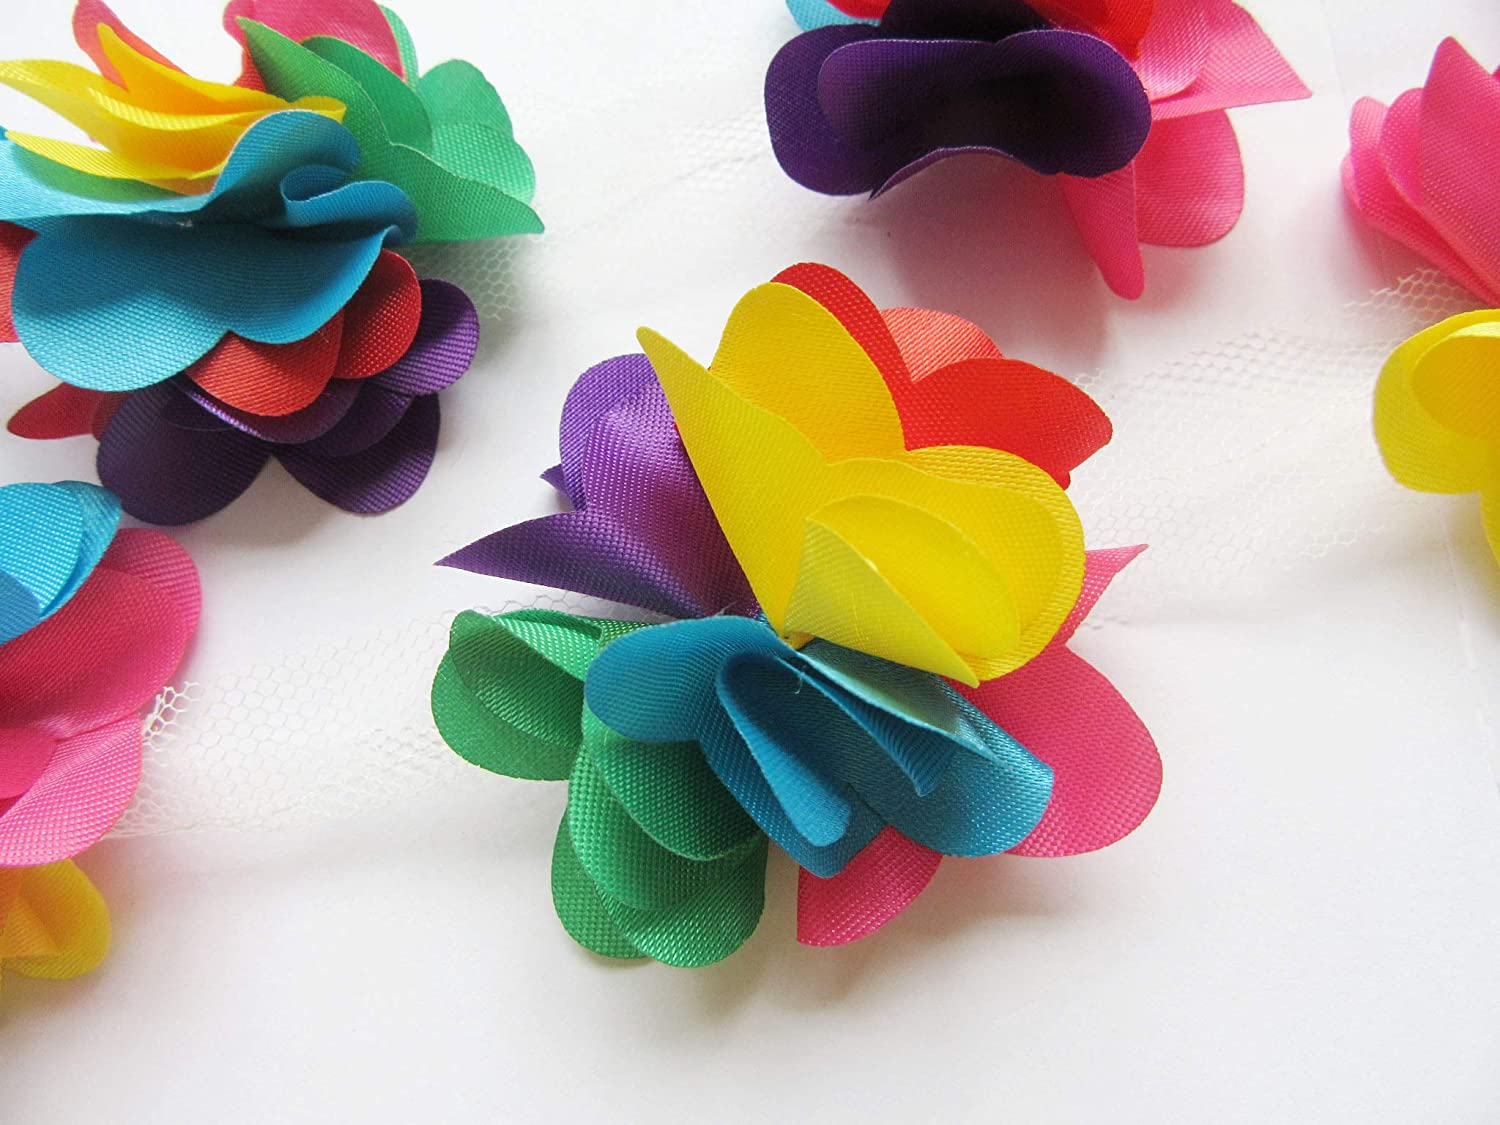 Hot Pink YYCRAFT 5 Yards 2.5 3D Chiffon Flower Lace Trims Bridal Bouquets Cluster Flower DIY Sewing